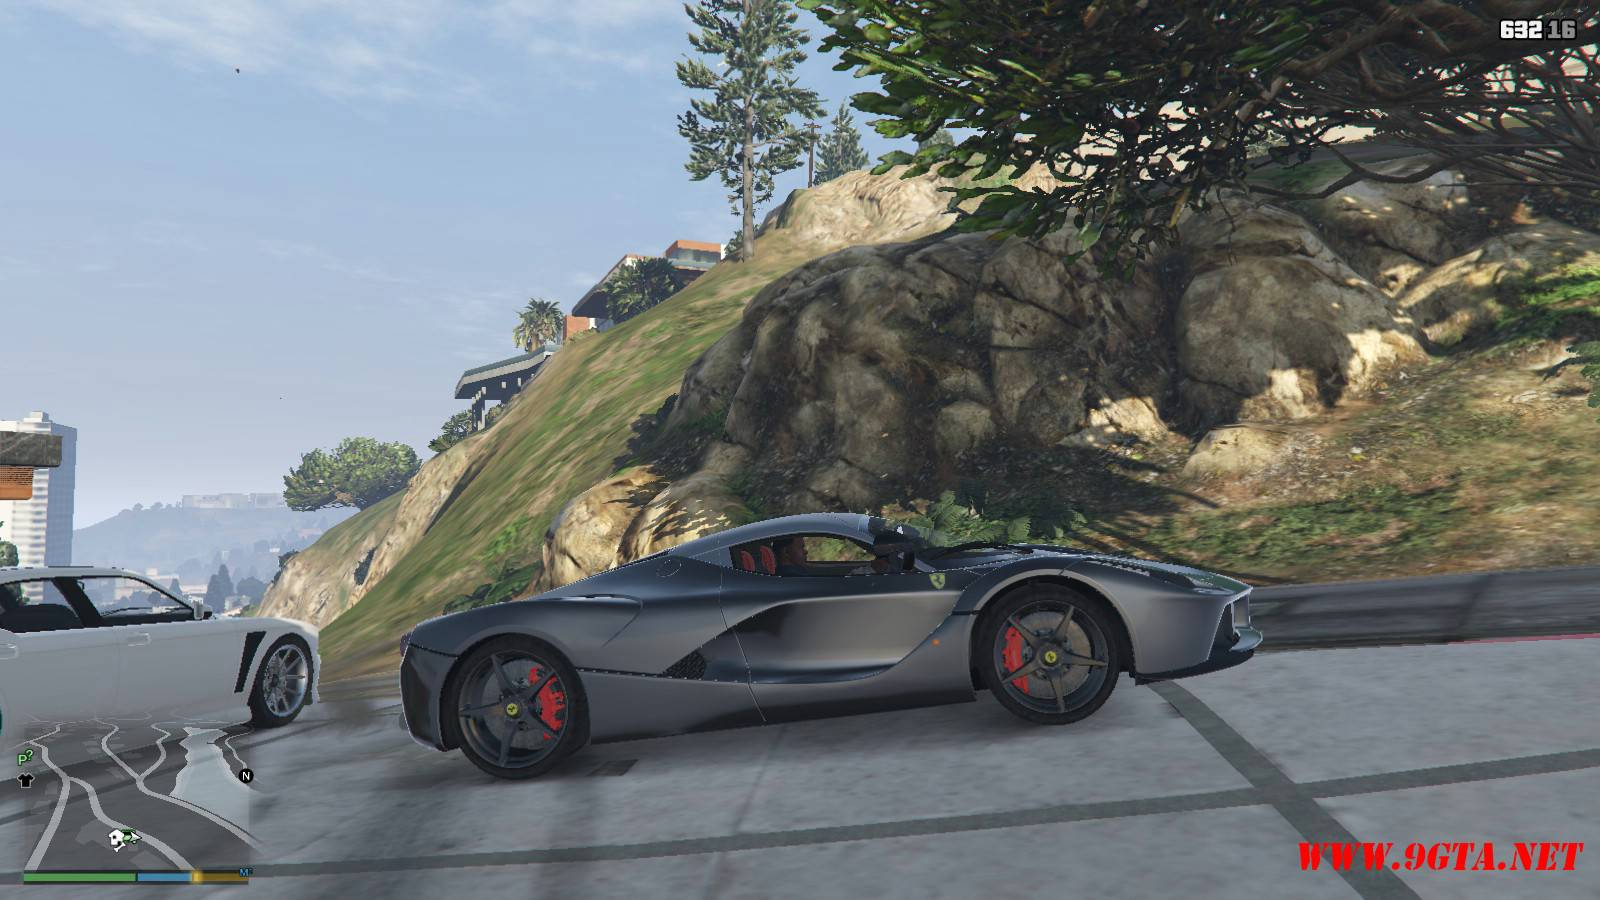 2015 Ferrari LeFerrari Mod For GTA5 (8)